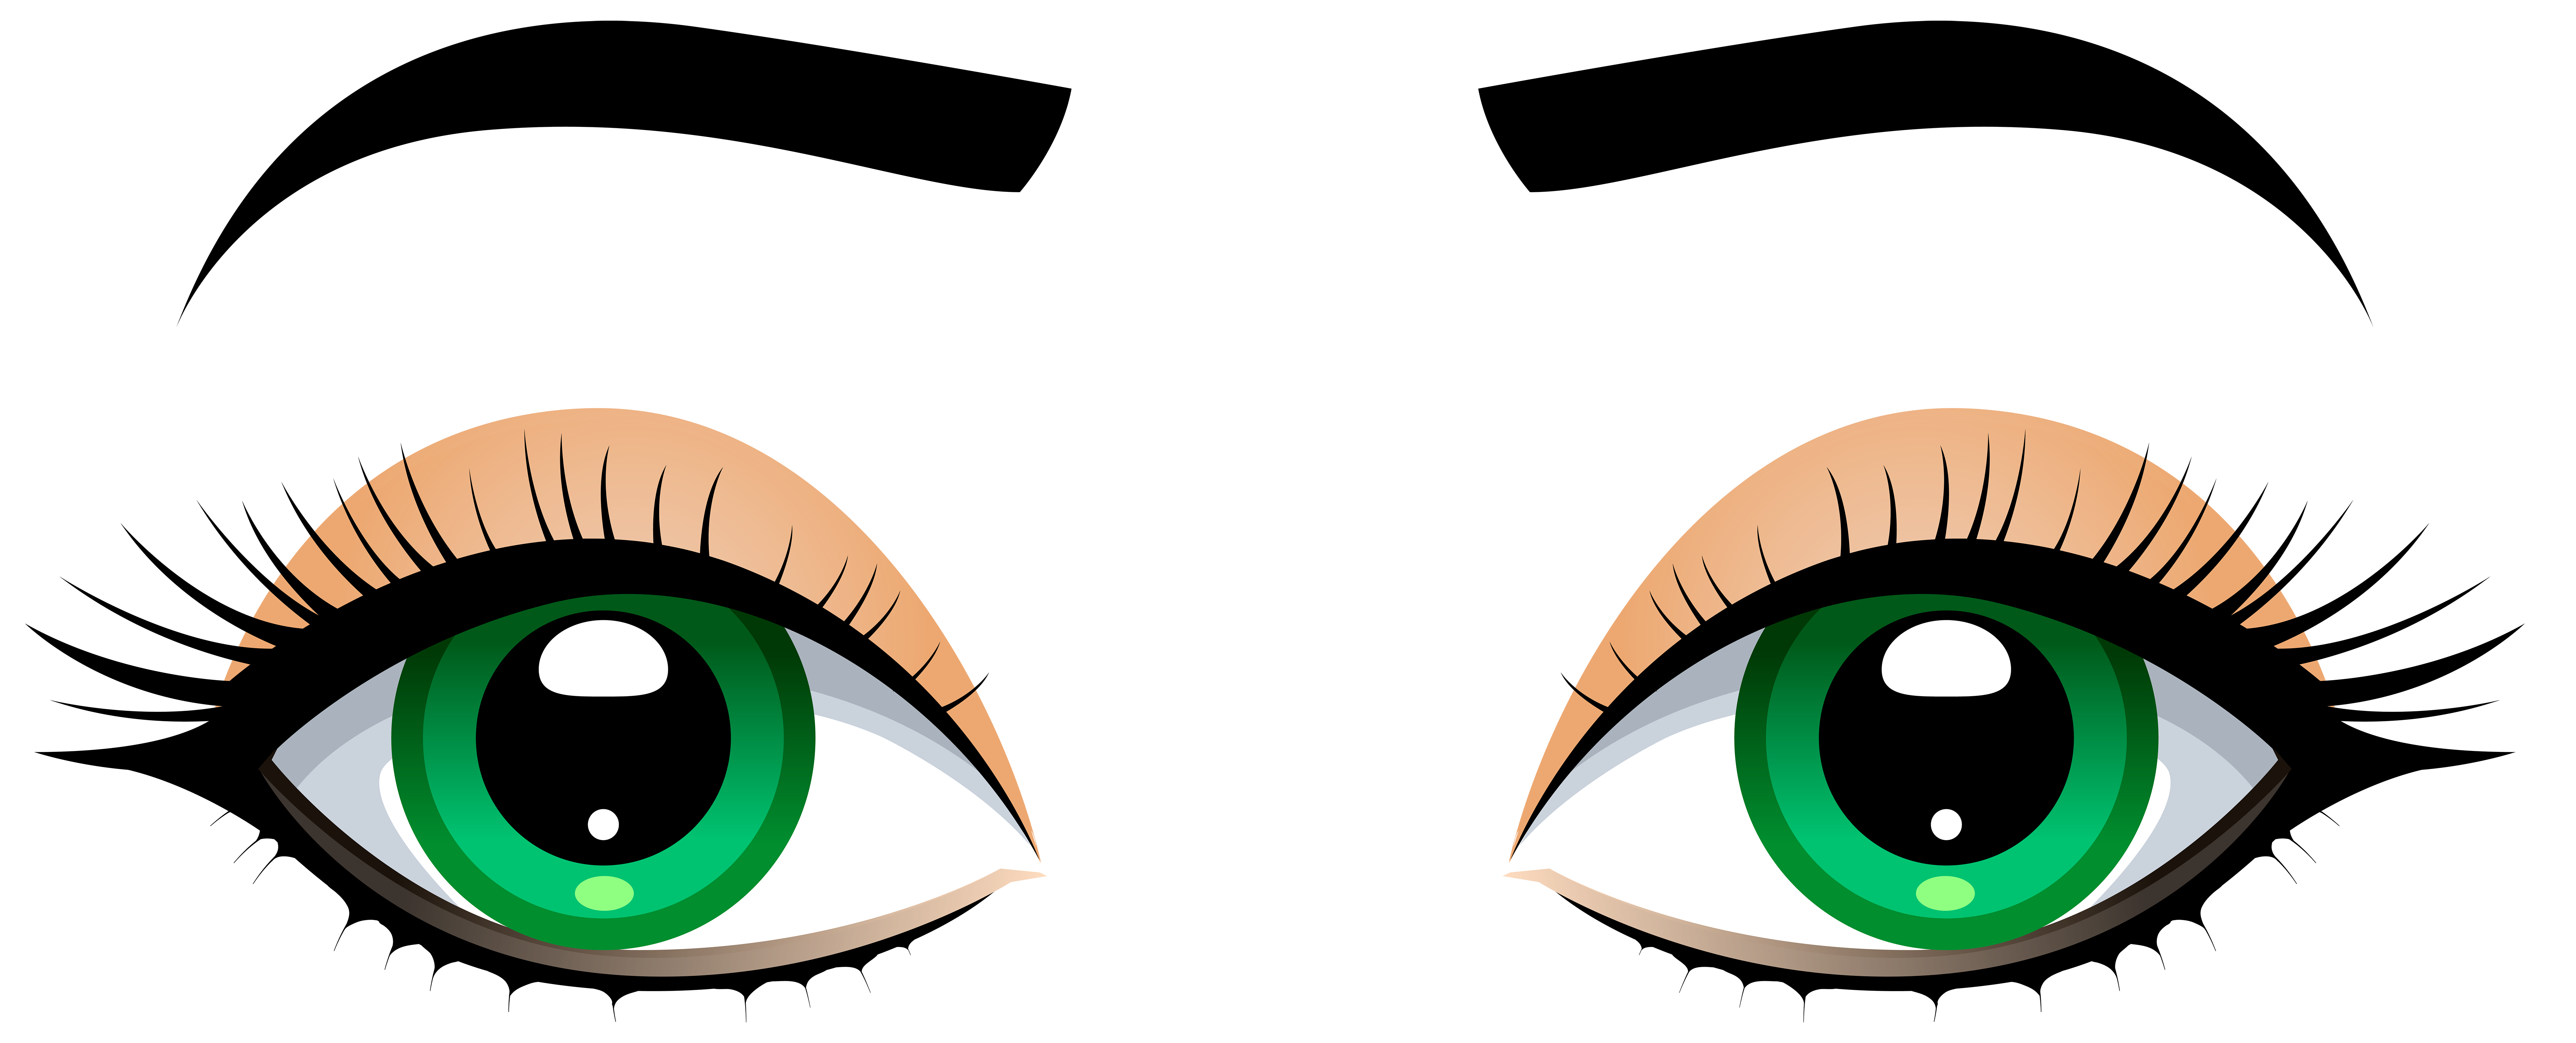 Human money clipart black and white library Female Eyes with Eyebrows PNG Clip Art - Best WEB Clipart black and white library